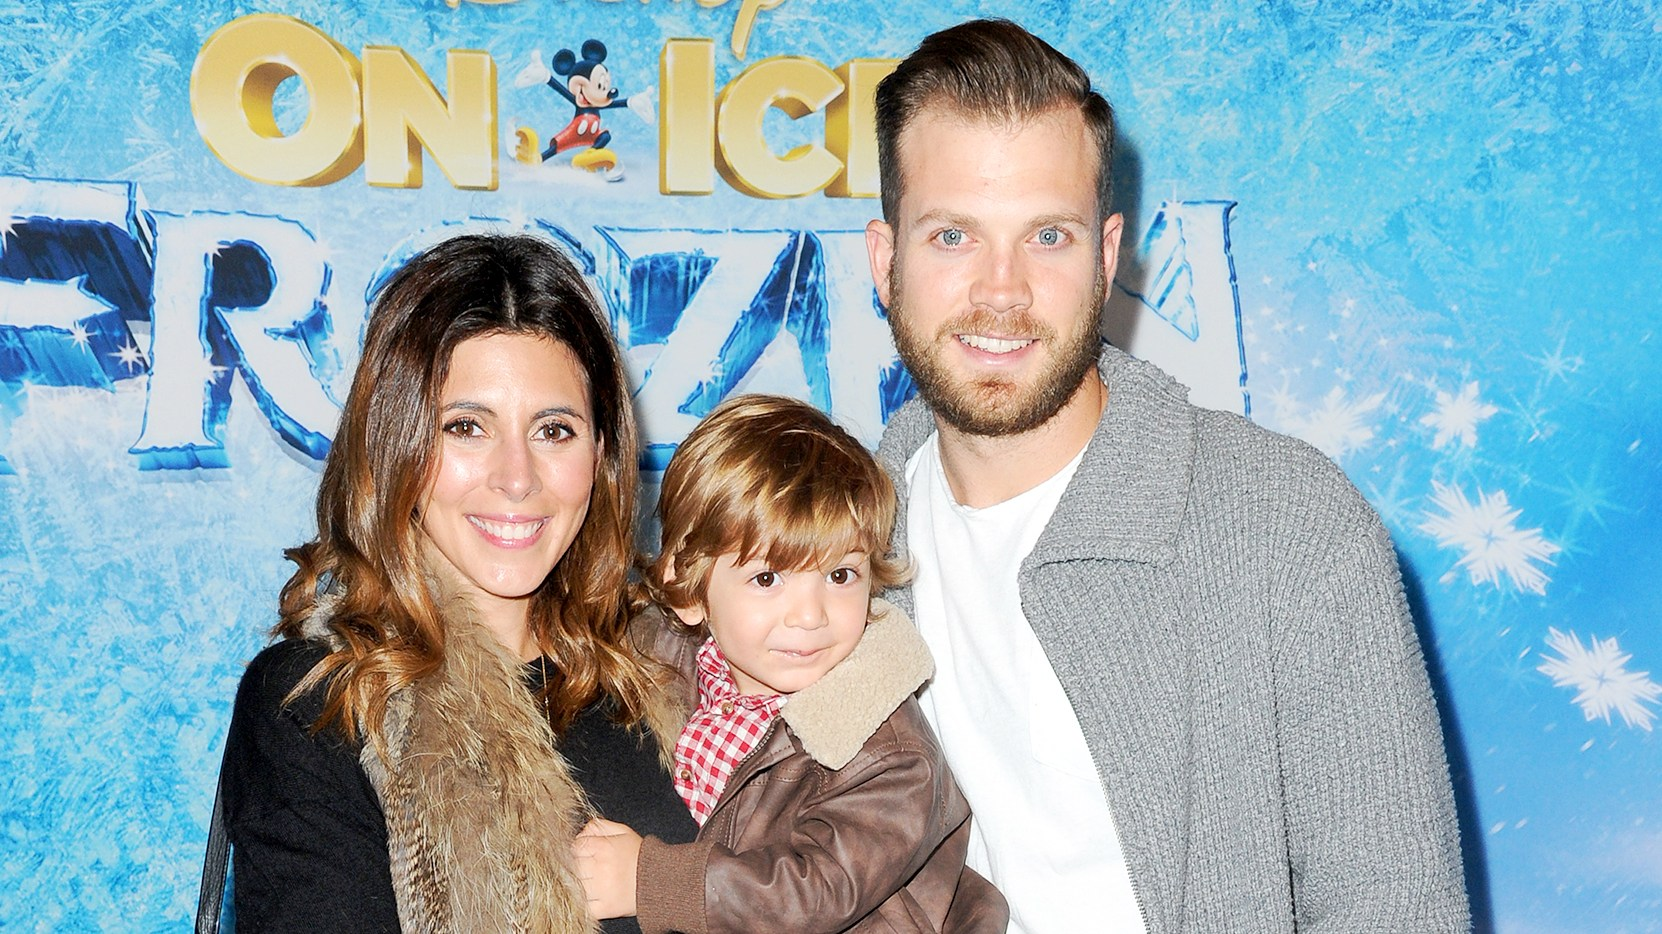 Jamie-Lynn Sigler and Cutter Dykstra with son Beau attend Frozen celebrity premiere presented by Disney On Ice held at the Staples Center on Thursday, Dec.10, 2015, in Los Angeles.